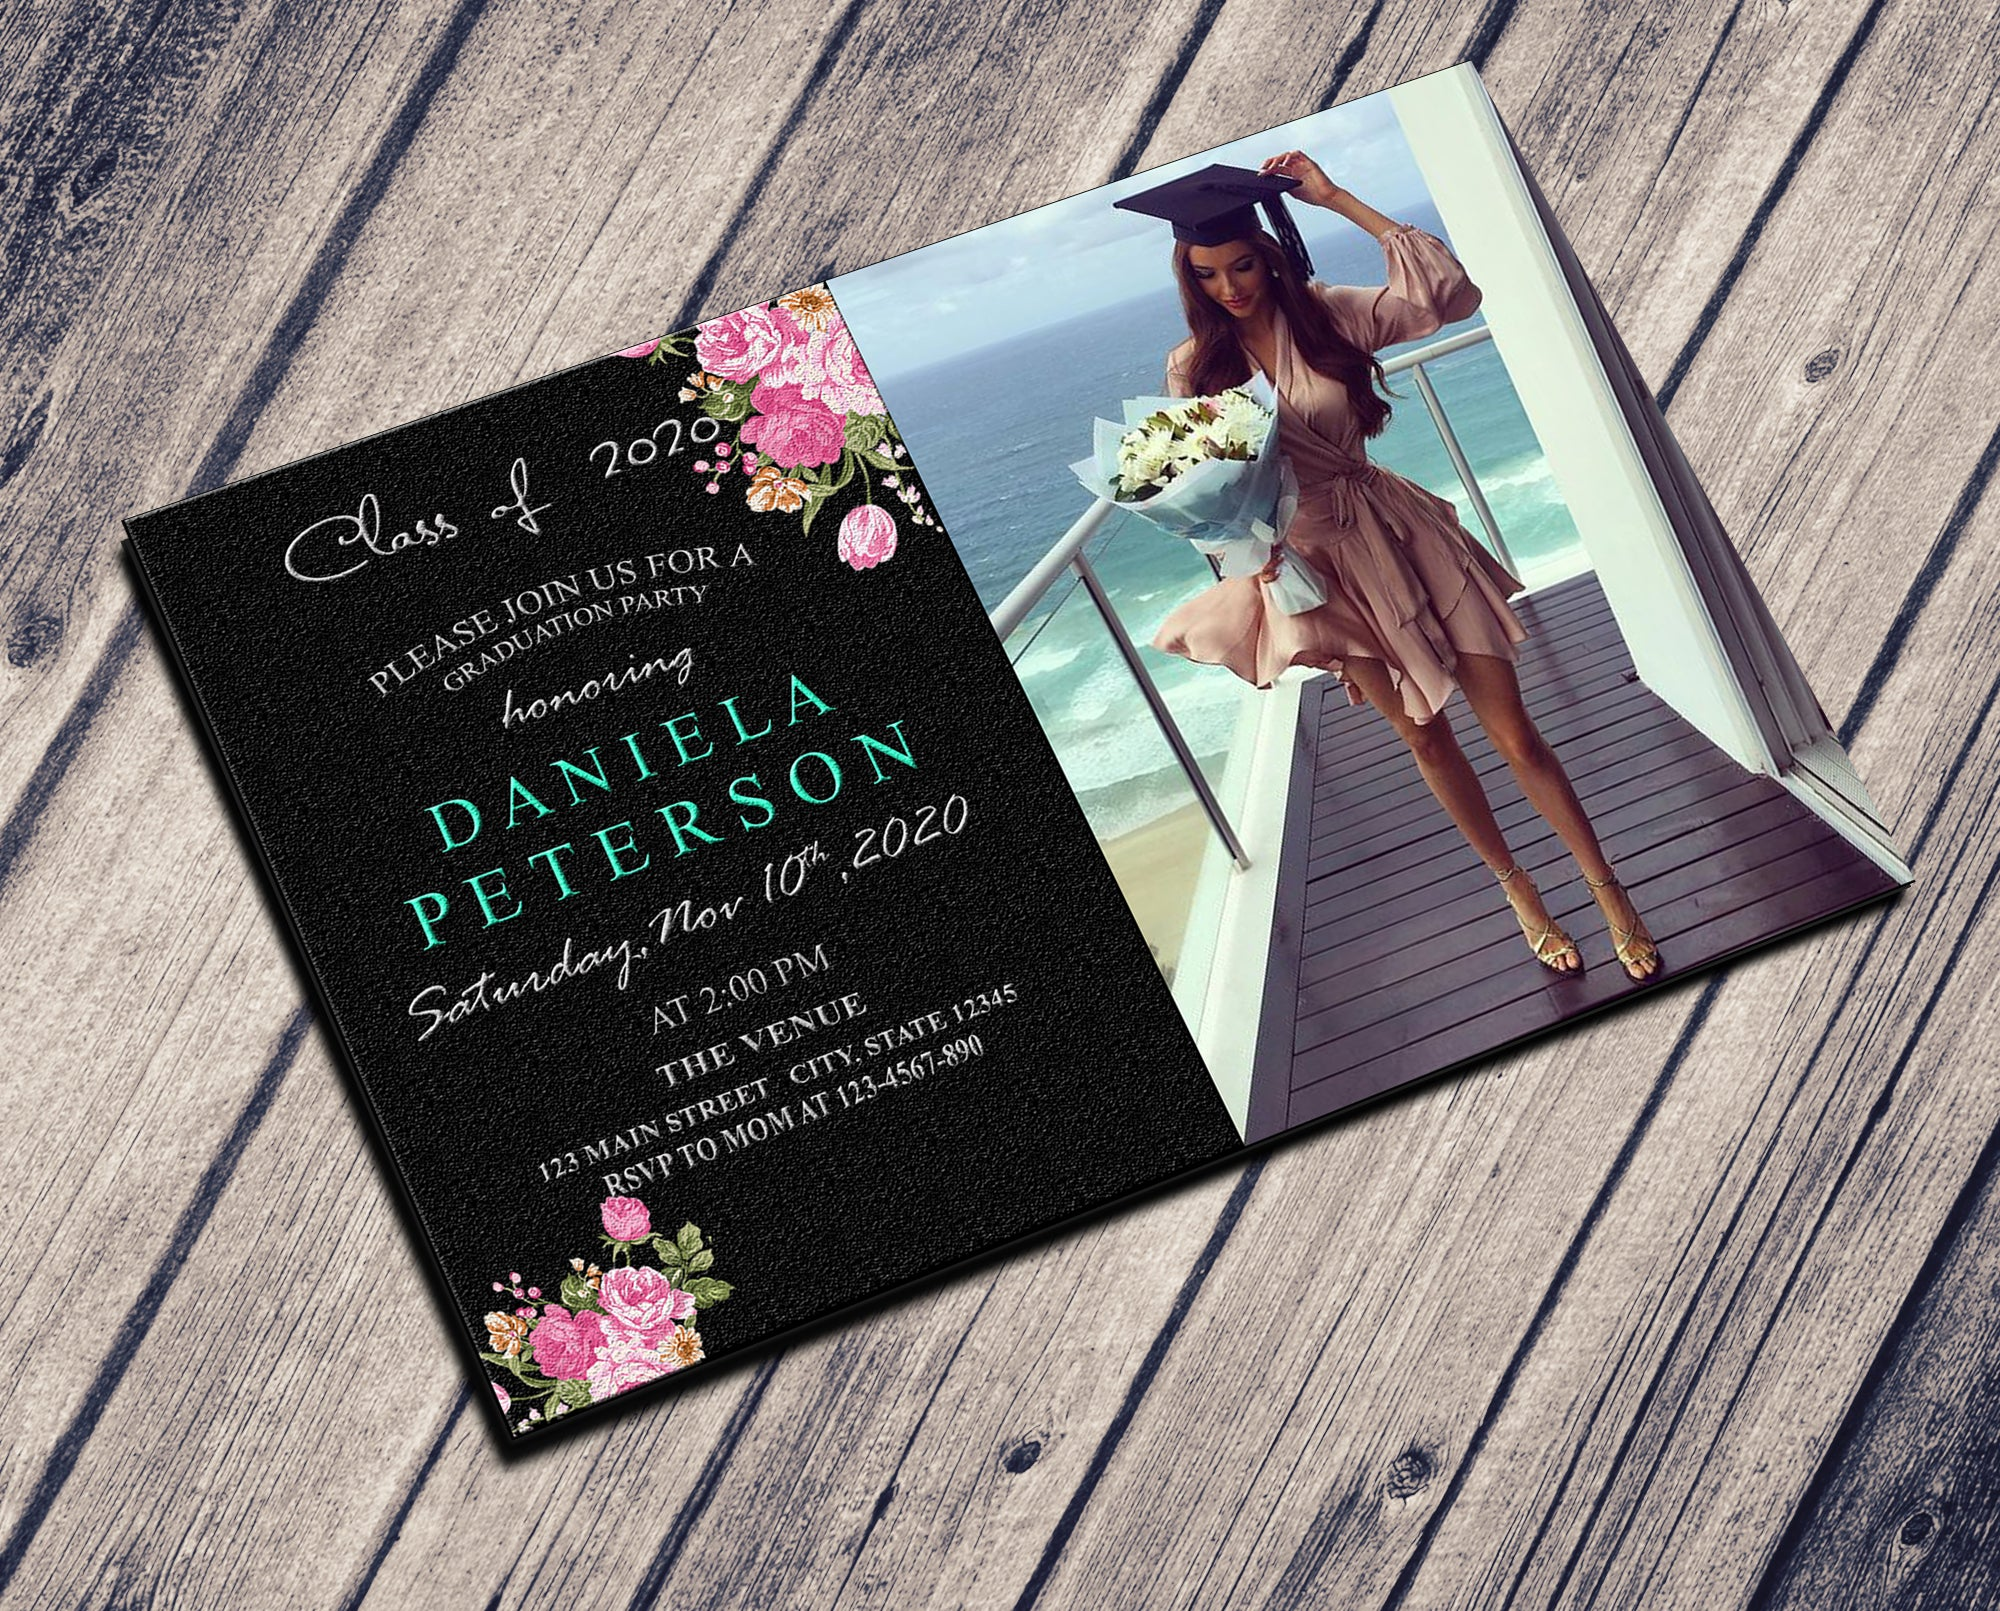 GRADUATION PARTY INVITATION - SOFT BLUE WITH PHOTO